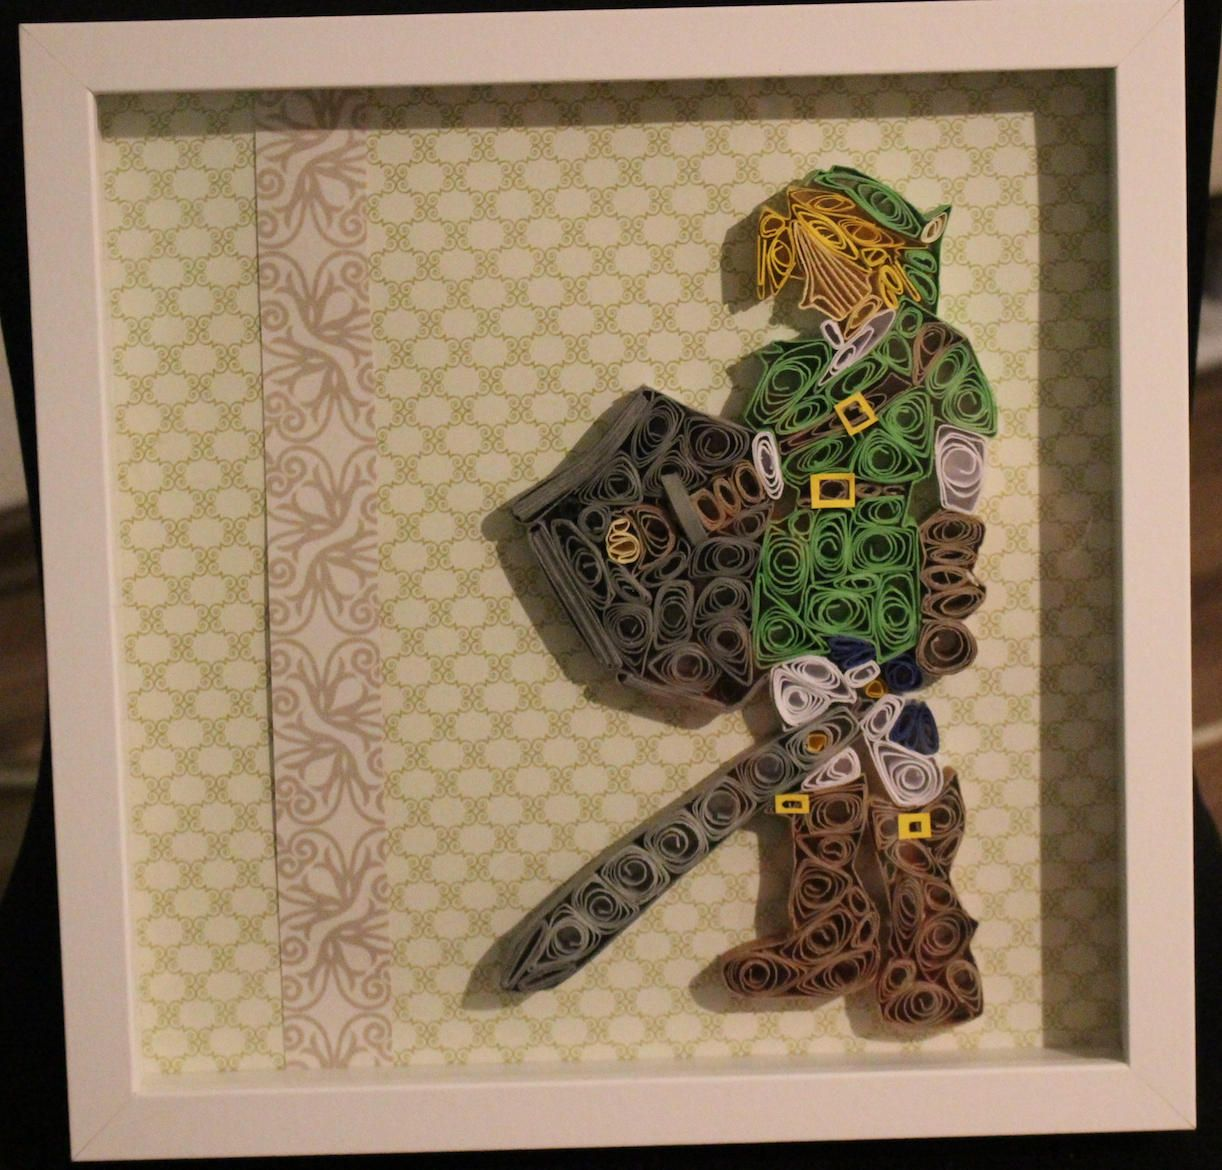 Zelda Link Legend Of Zelda Quilling Abstract Art Home Decor Gifts For Him  Mancave Geeky Gifts